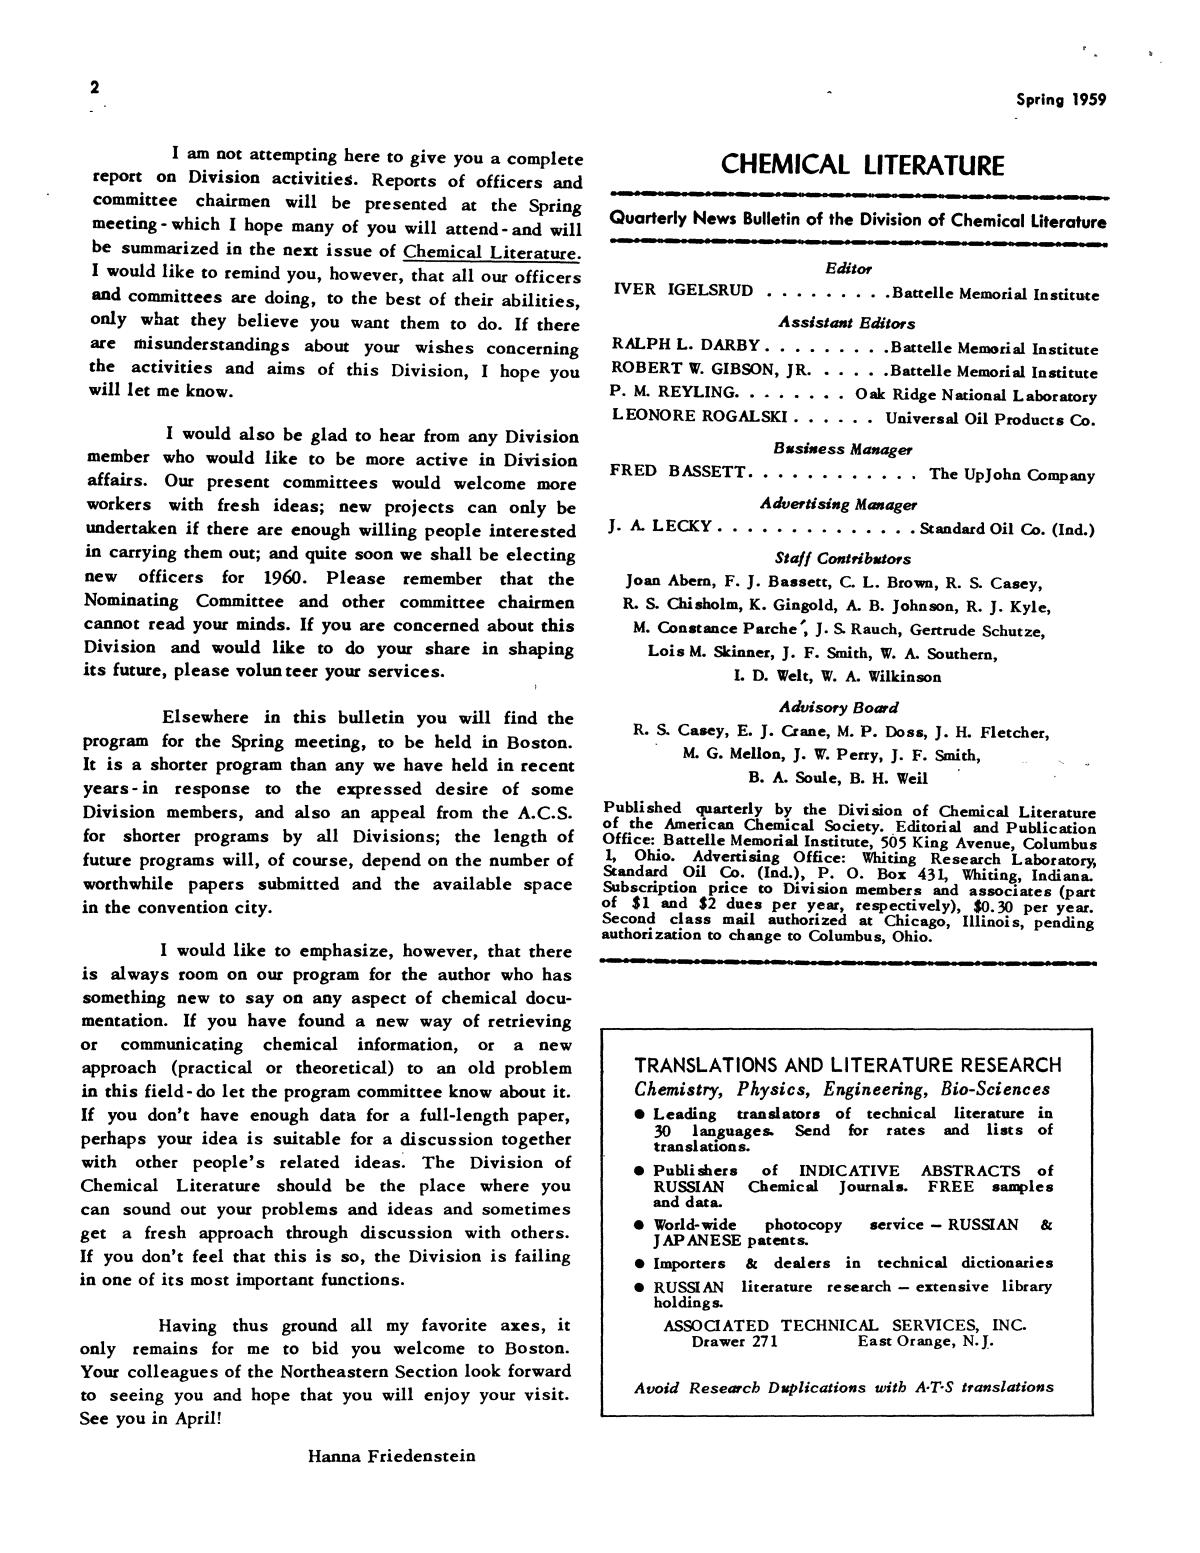 Chemical Literature, Volume 11, Number 1, Spring 1959                                                                                                      2